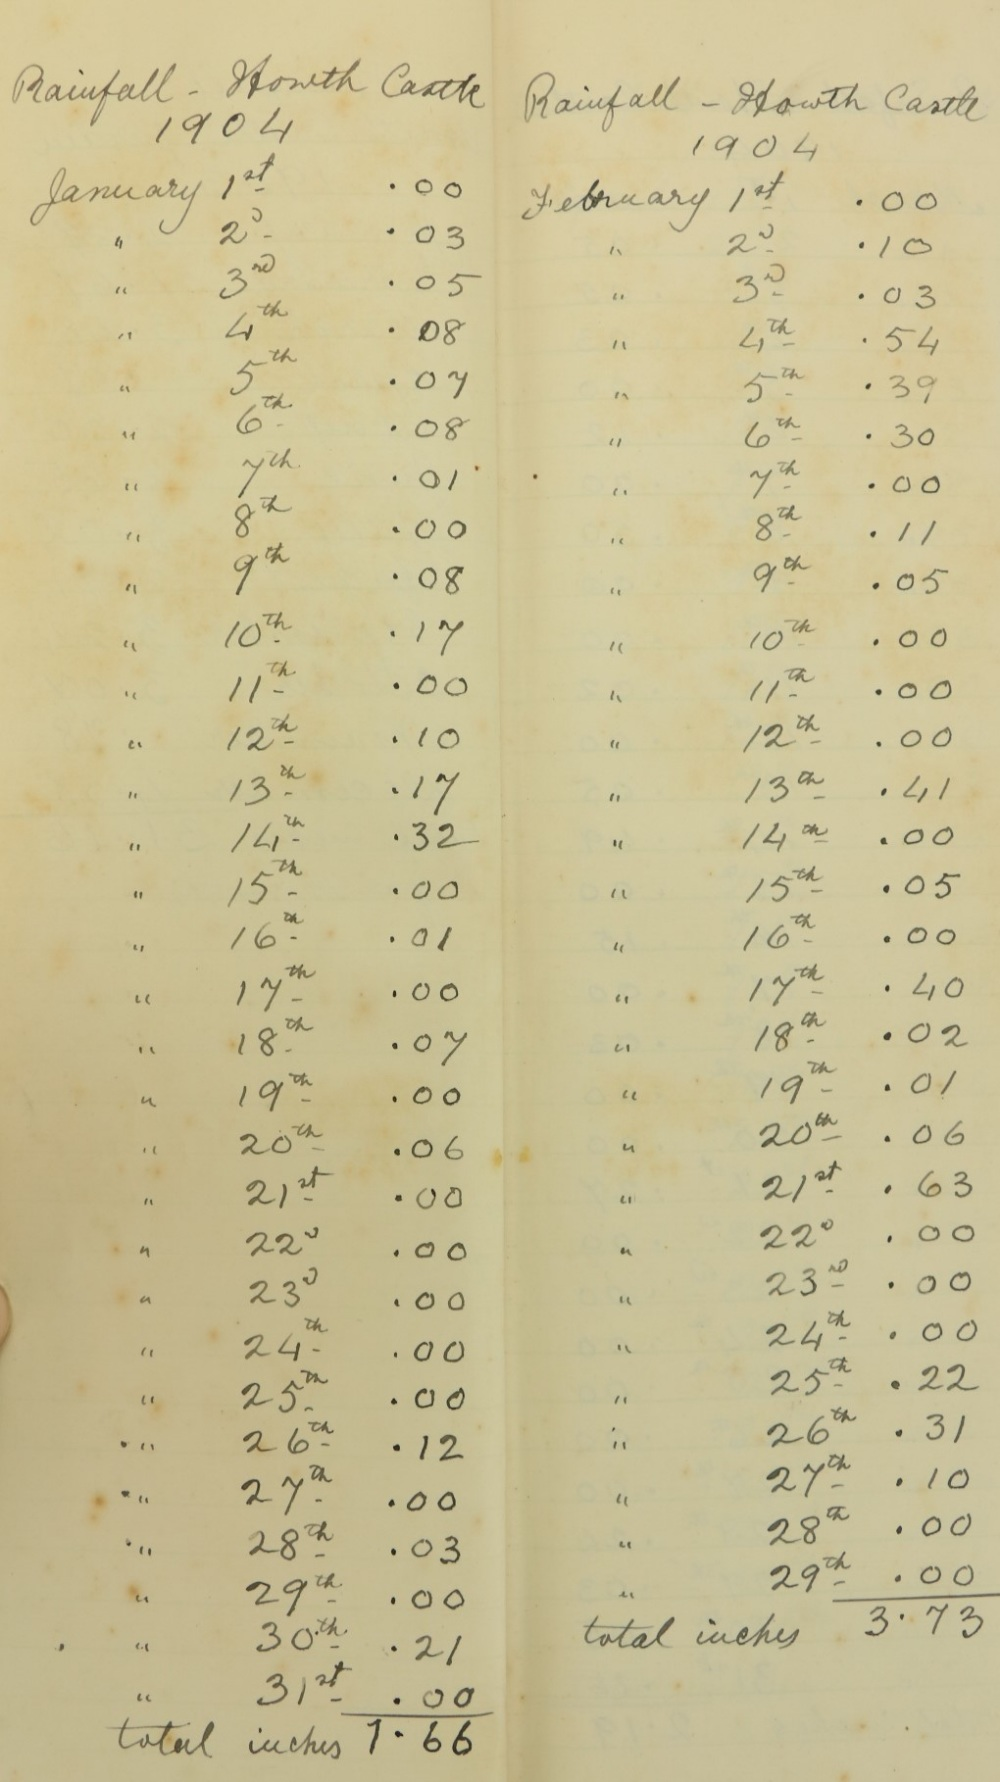 Howth Castle:ÿÿÿGame Register, Nov. 1915 - Dec. 1936. It details date, and those in the party on